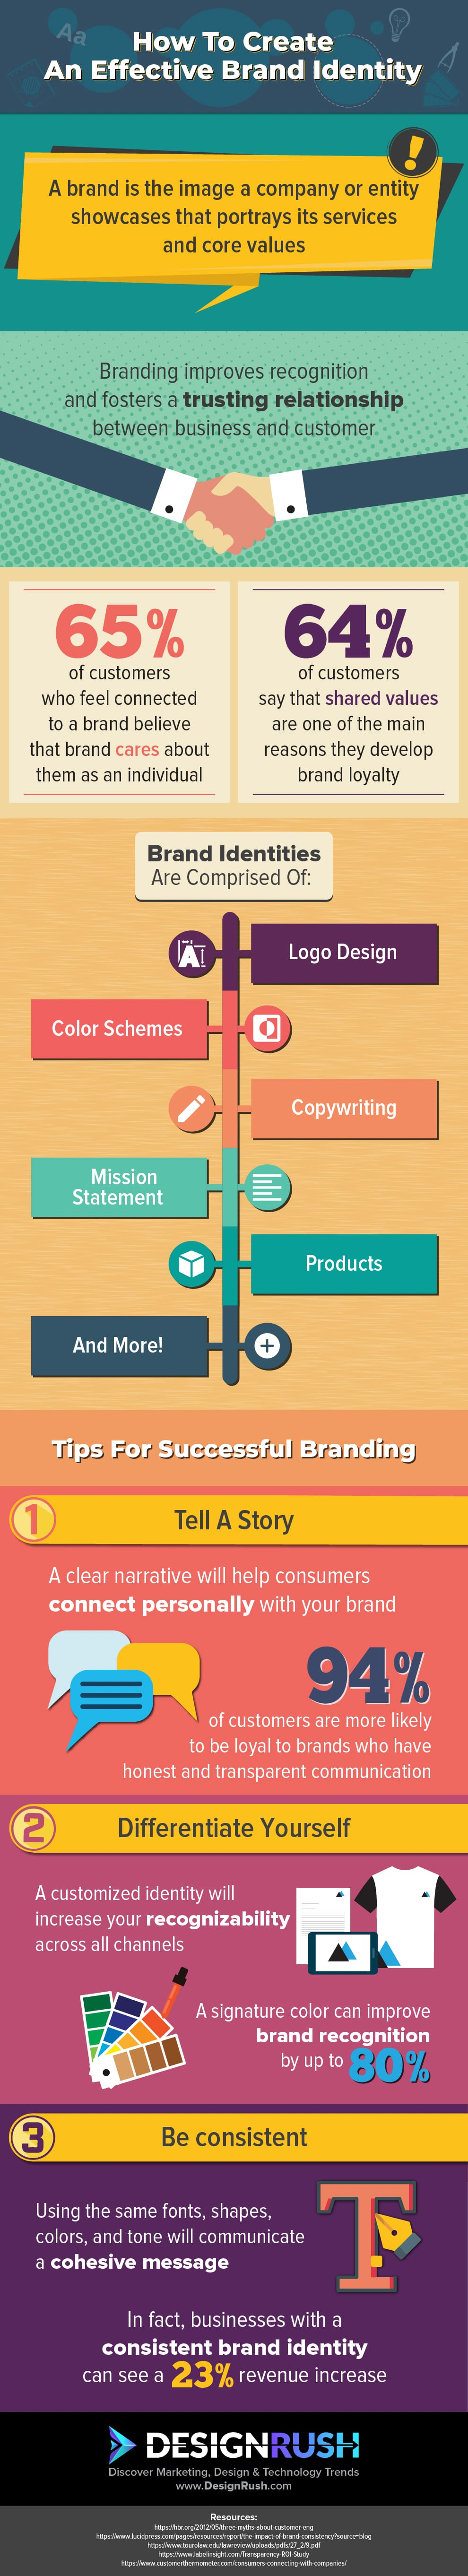 How to Create an Effective Brand Identity (infographic)